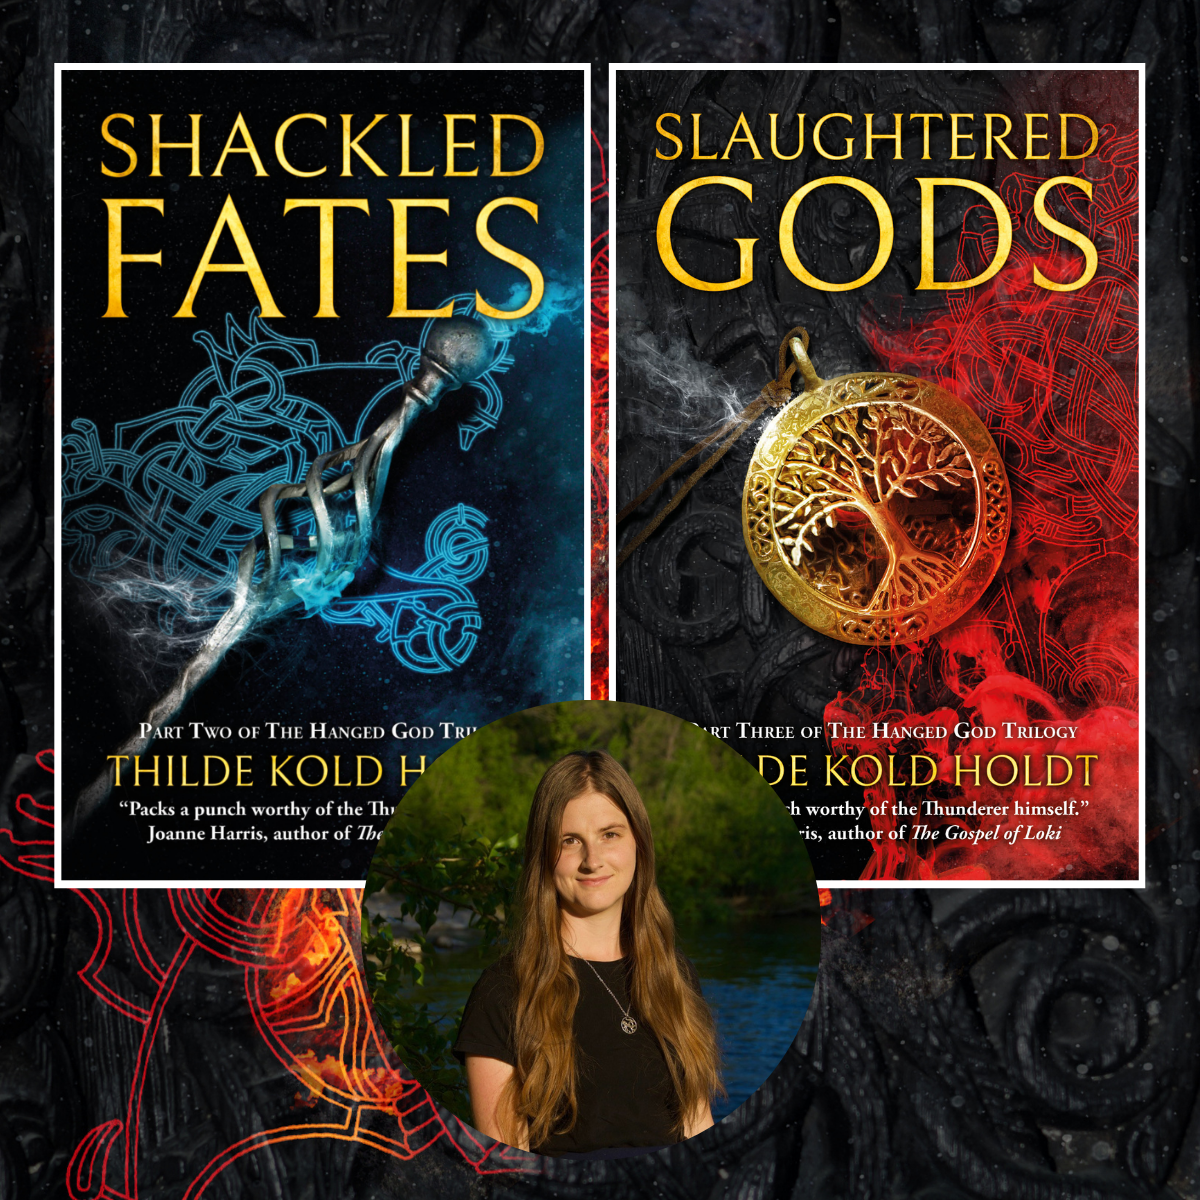 Shackled Fates and Slaughtered Gods by Thilde Kold Holdt